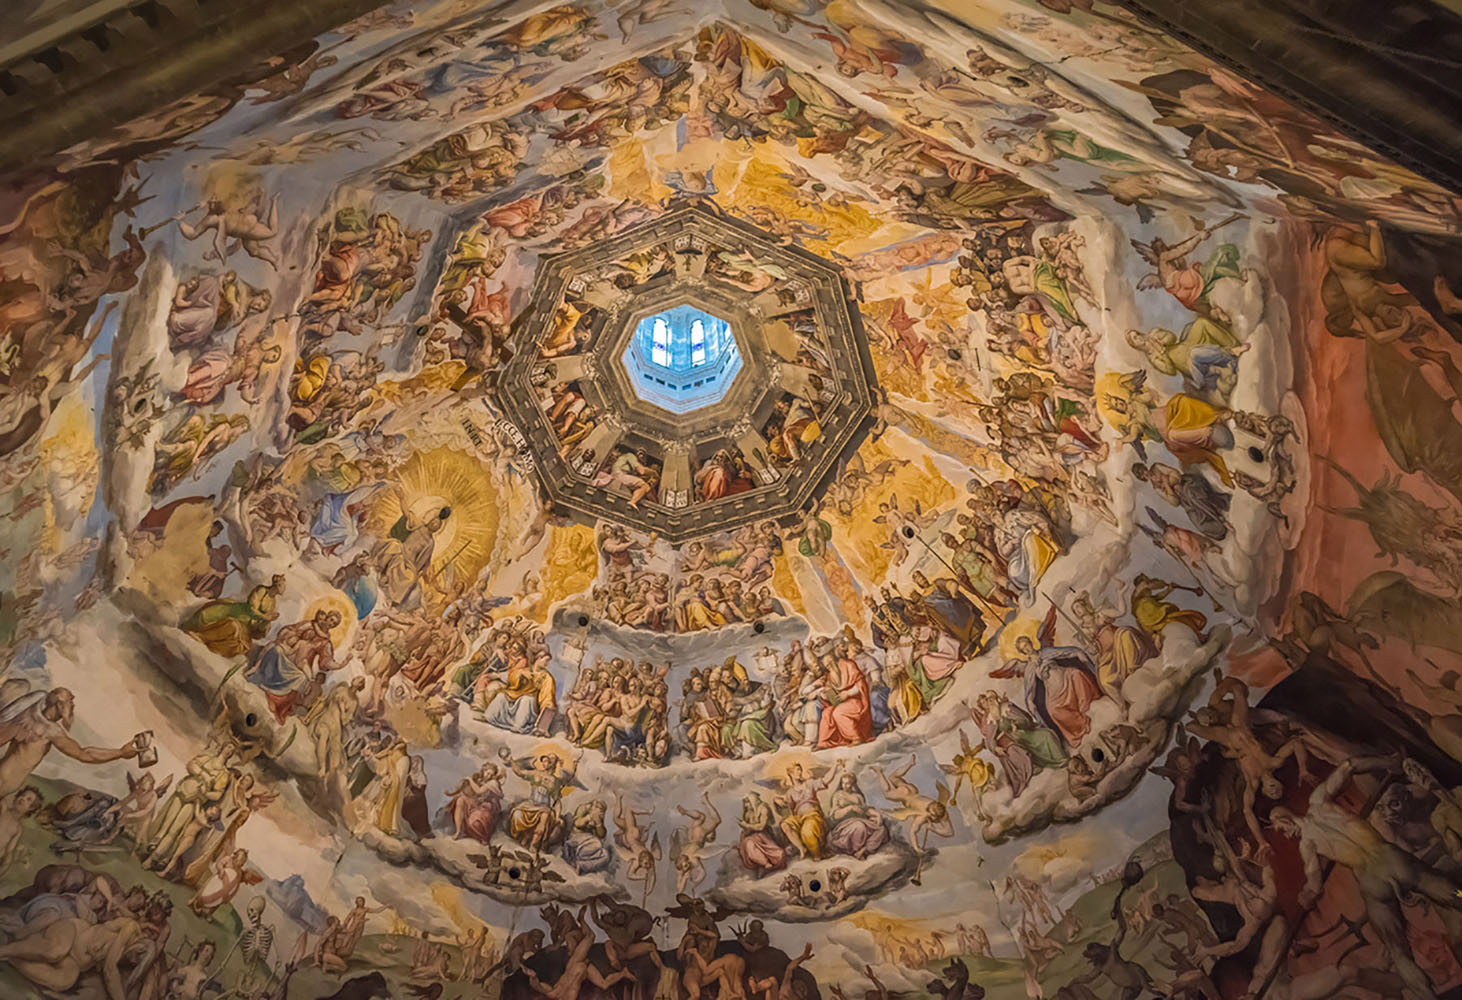 The interior of the Florence Cathedral's dome.